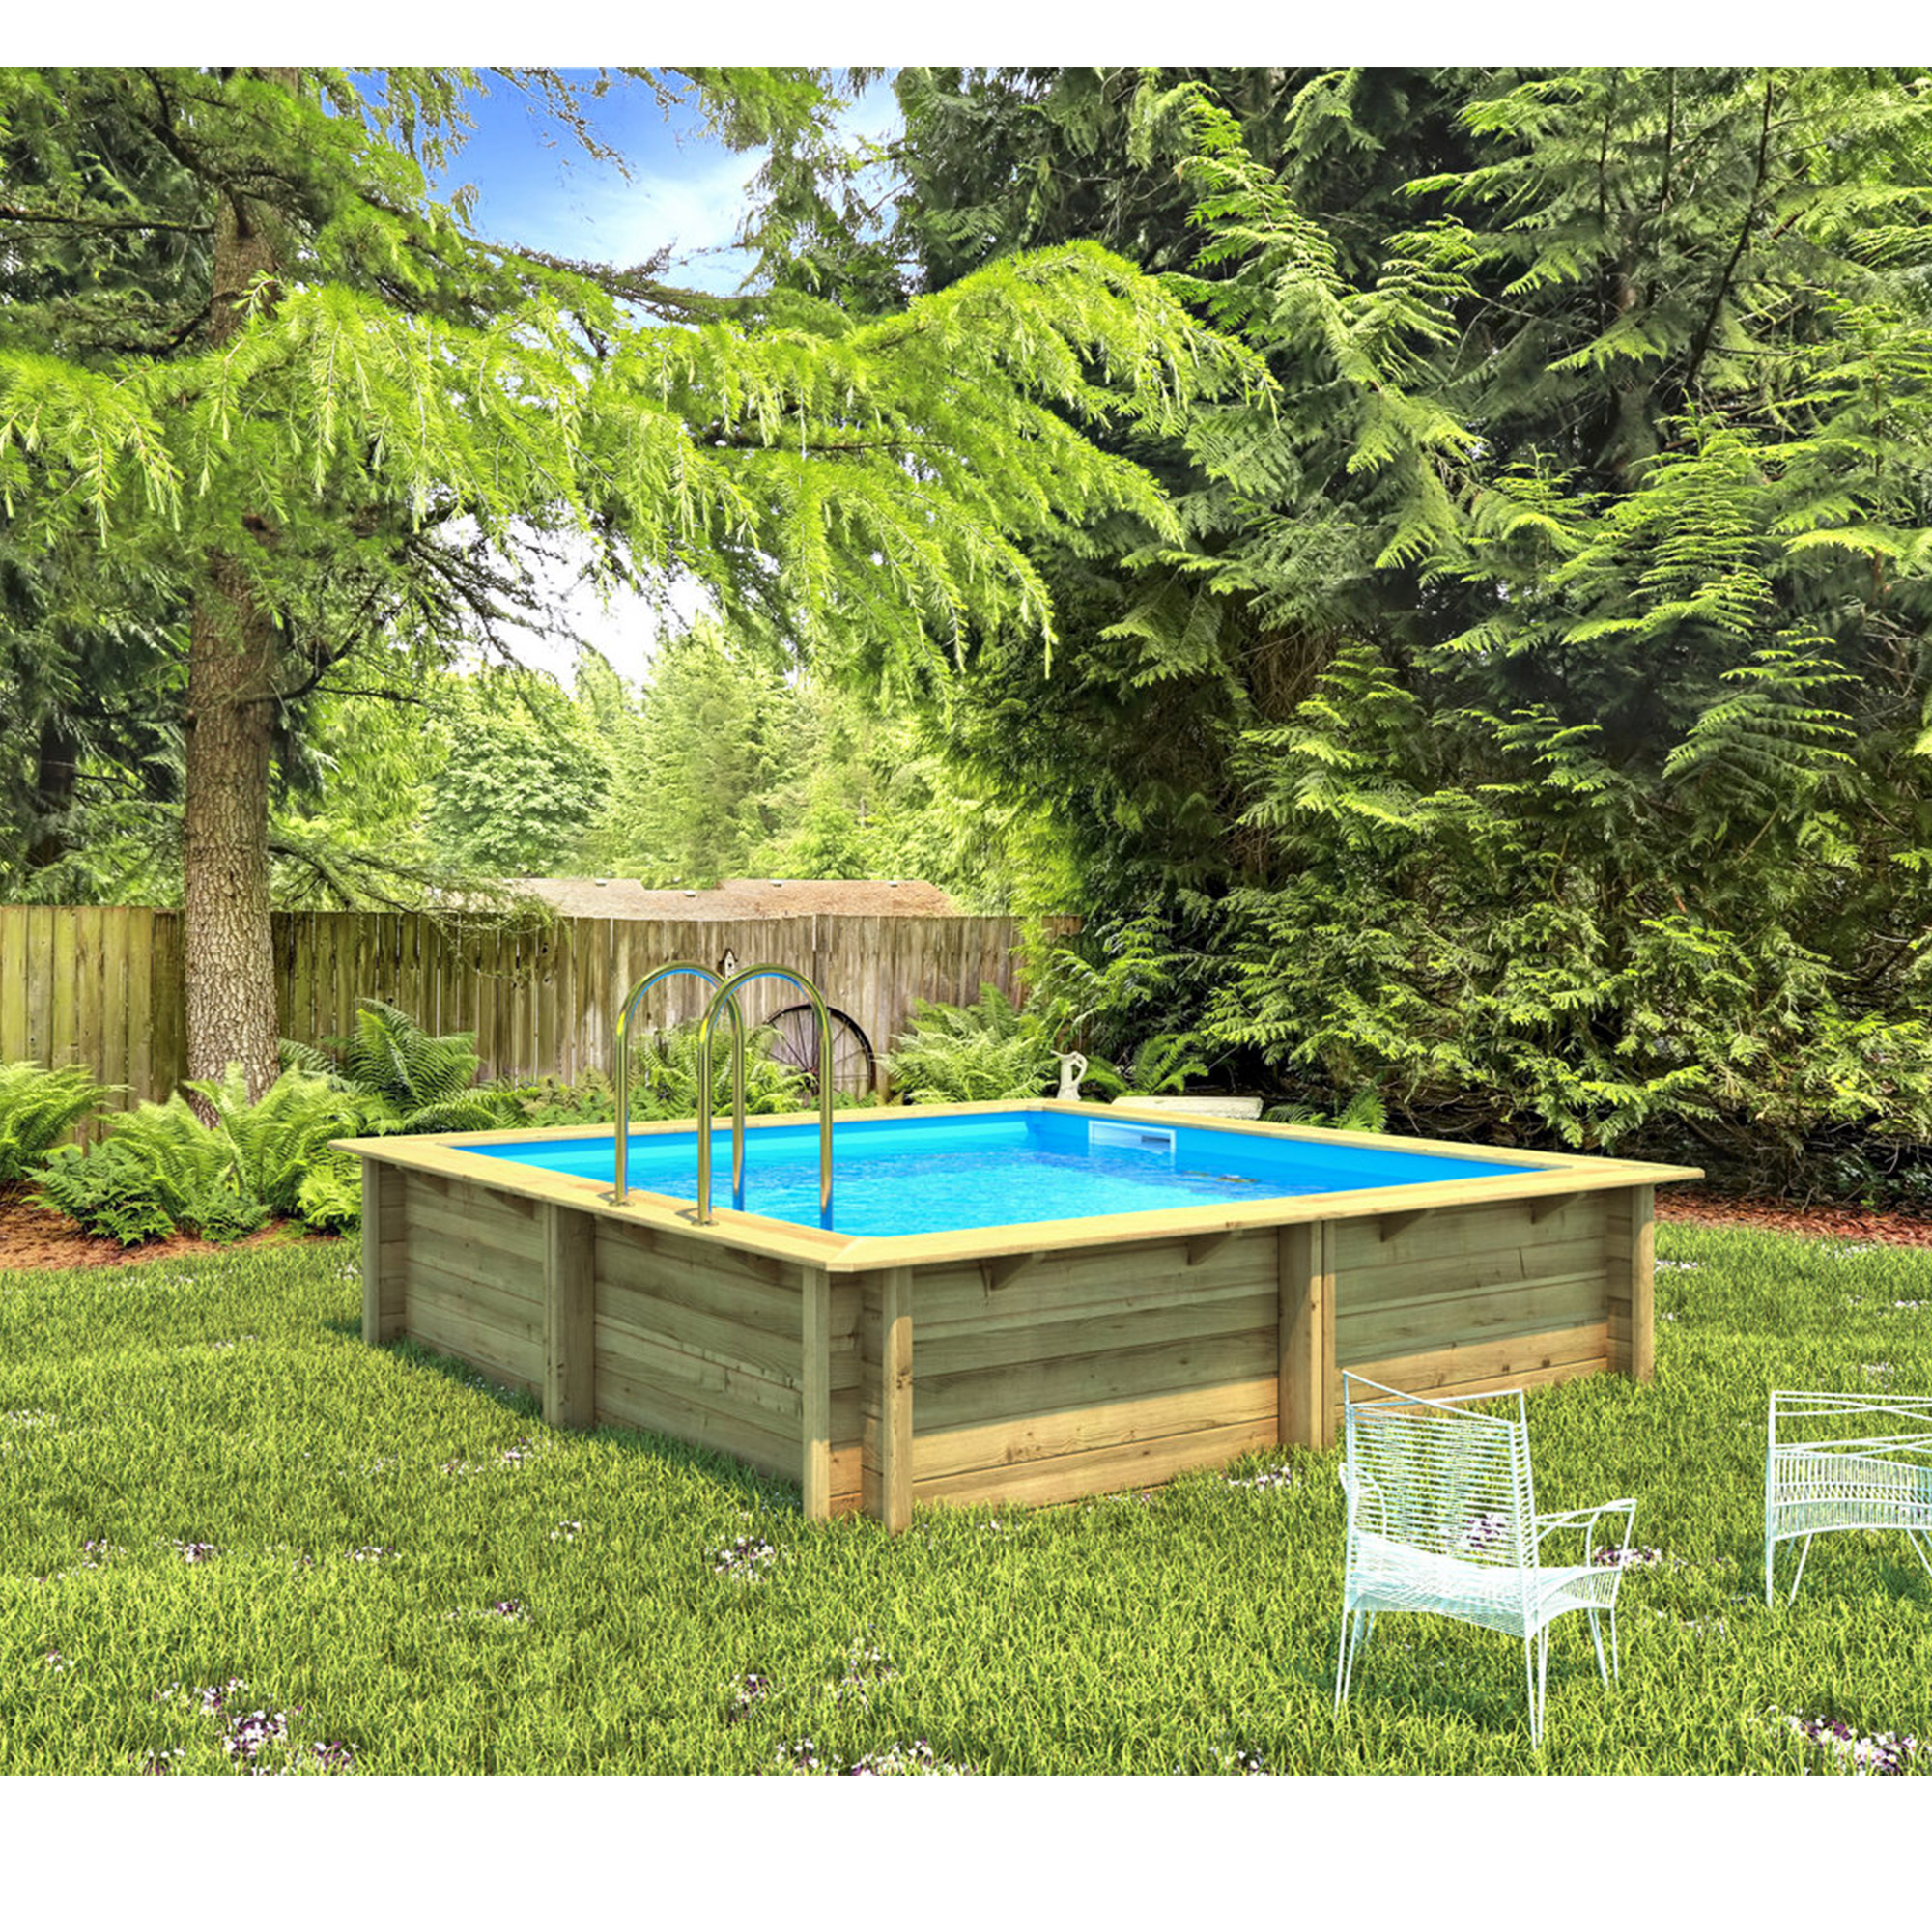 Piscine bois carr e hors sol semi enterr e enterr e for Piscine coque carree 3x3